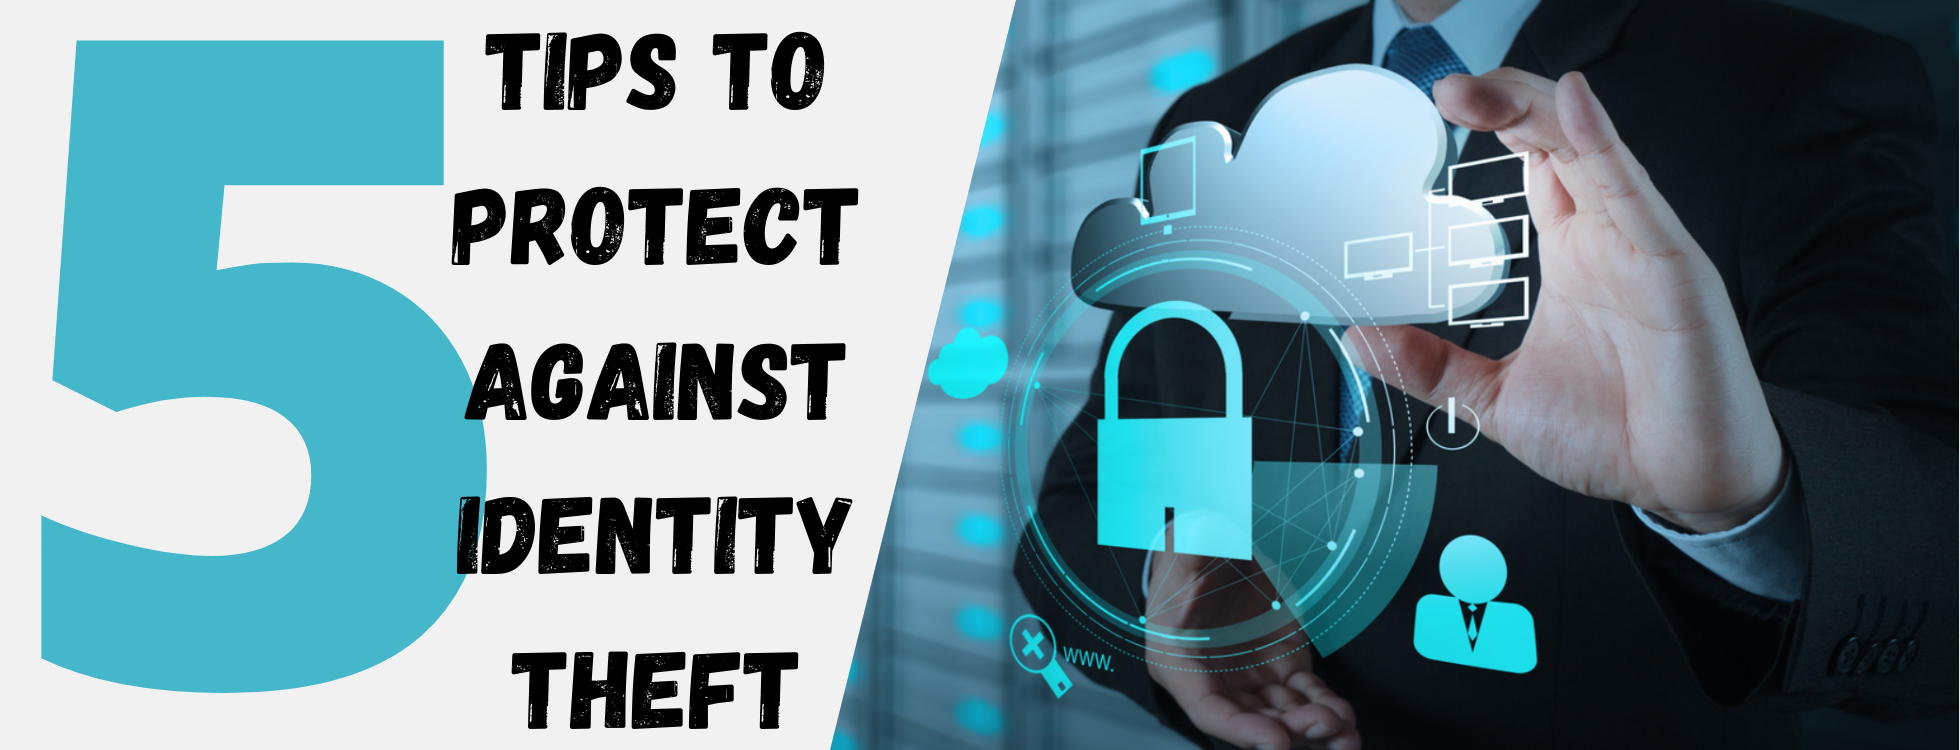 Tips against Identity Theft (1)